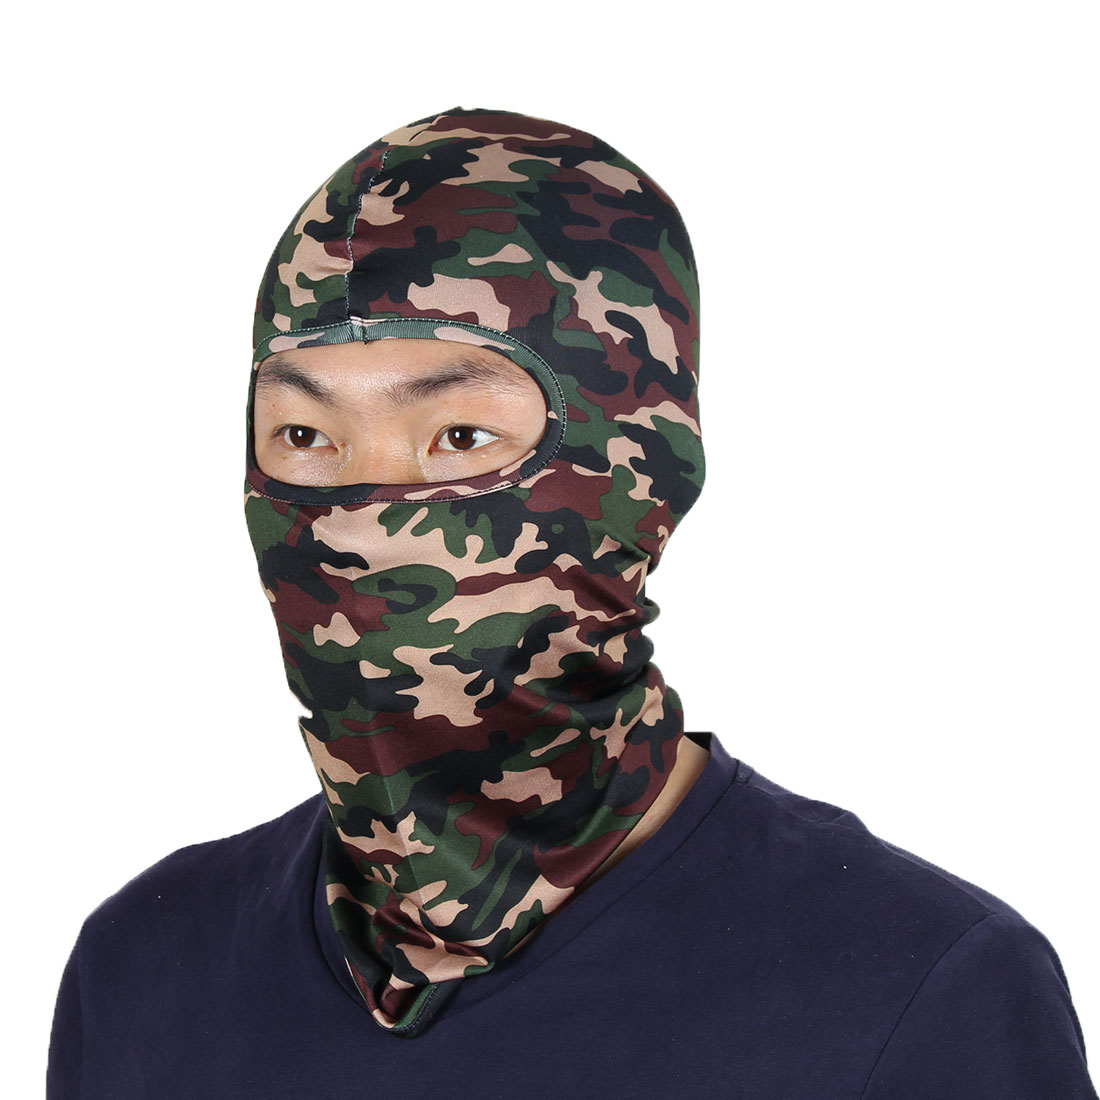 Full Coverage Face Mask Outdoor Neck Protector Hood Helmet Balaclava Camouflage by Unique-Bargains